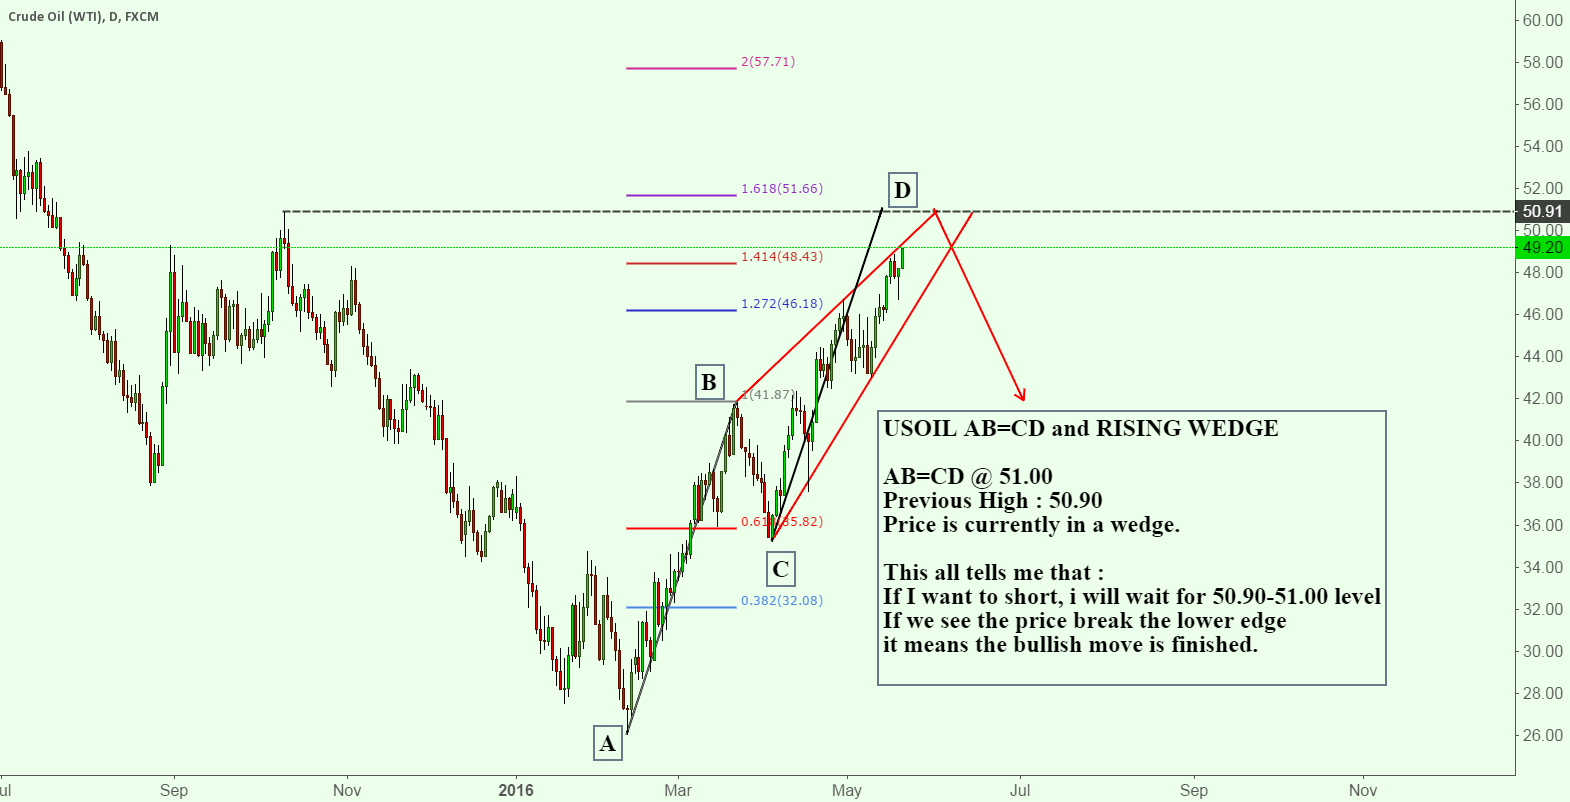 USOIL AB=CD and RISING WEDGE